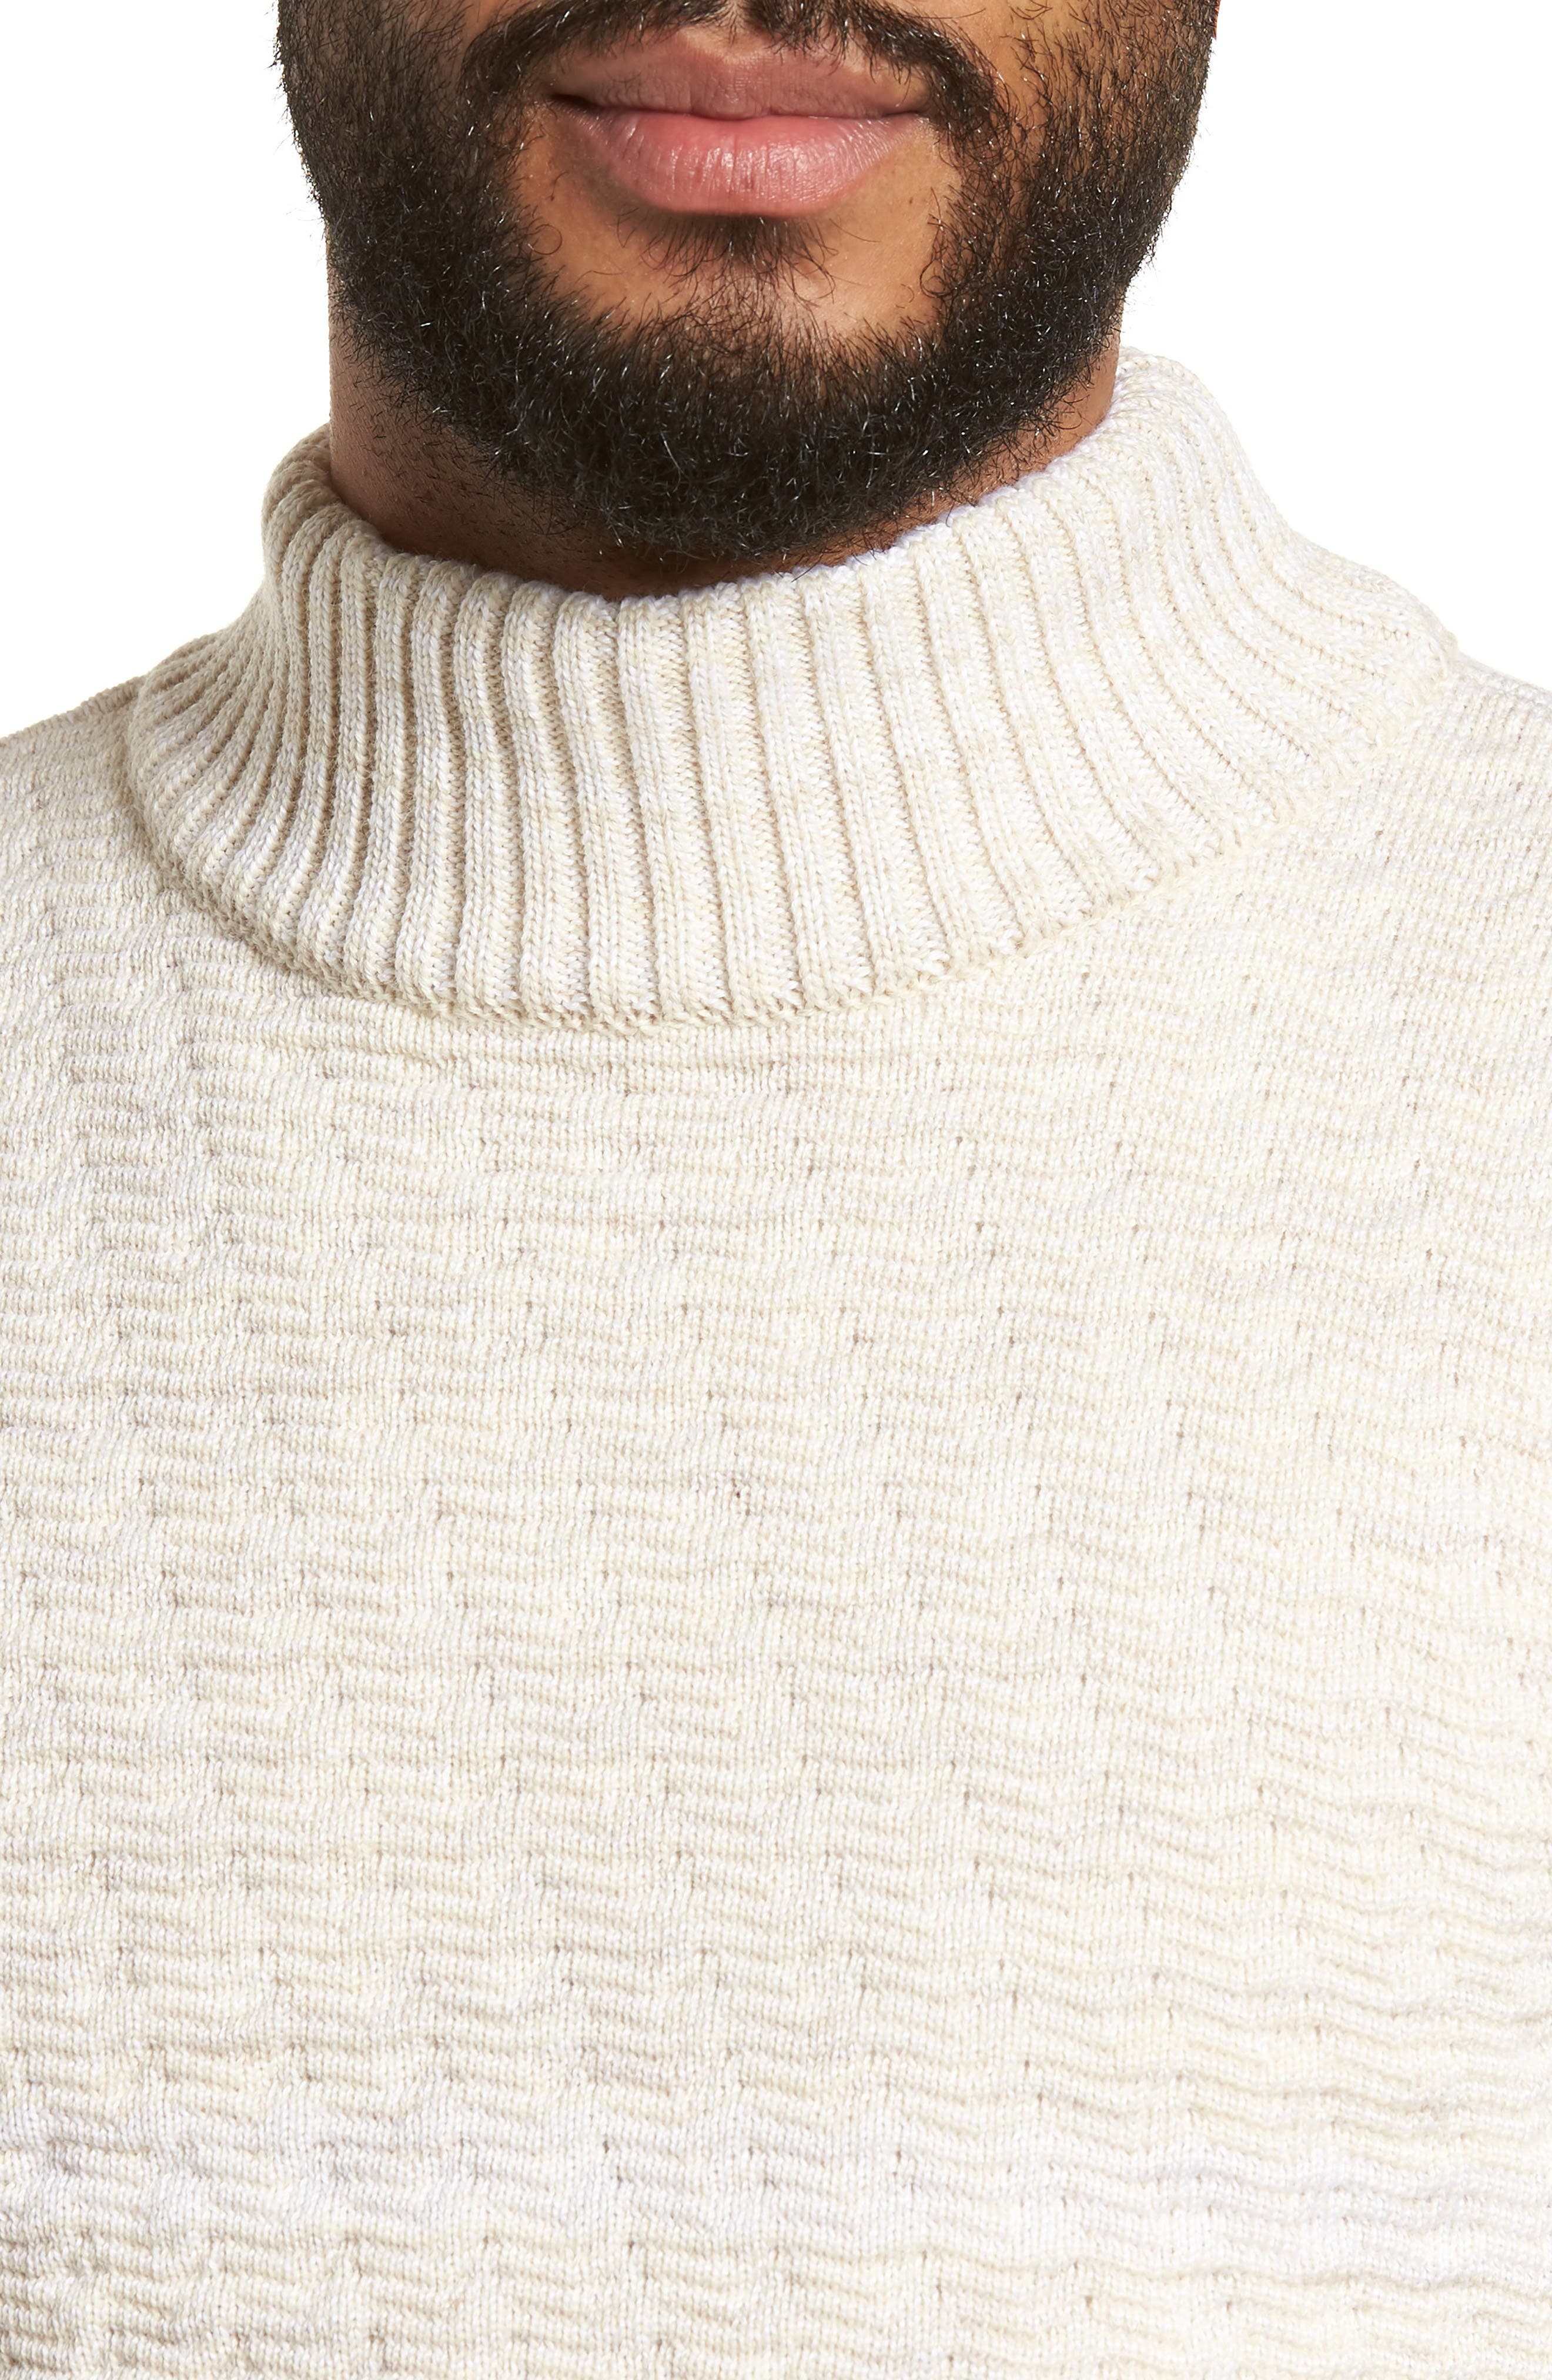 Evident Wool Turtleneck Sweater,                             Alternate thumbnail 4, color,                             250